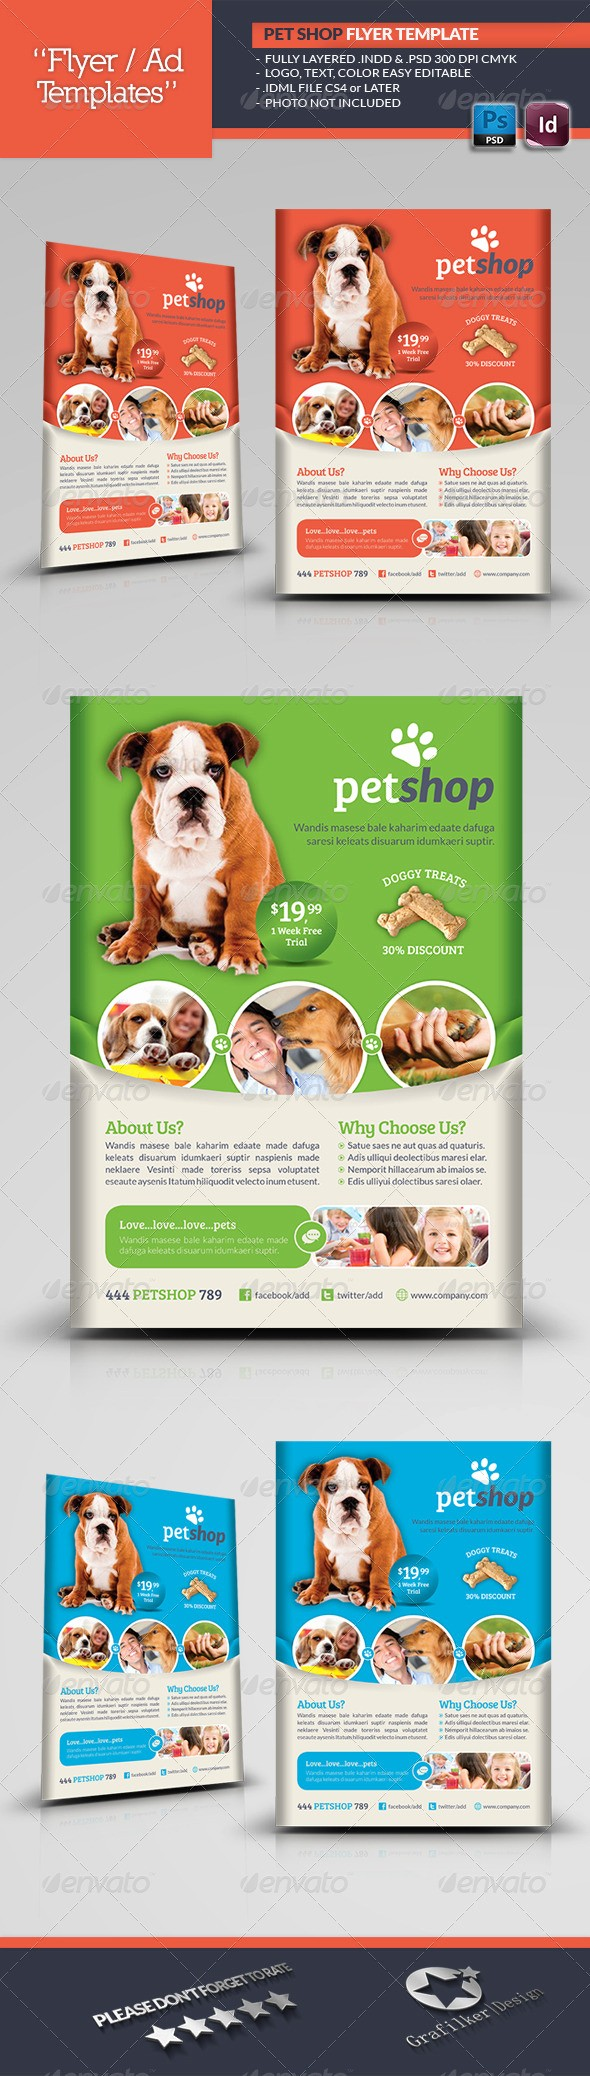 Puppies for Sale Flyer Template Elegant Pet Care Banners Psd Templates and Animal Shelter Pet